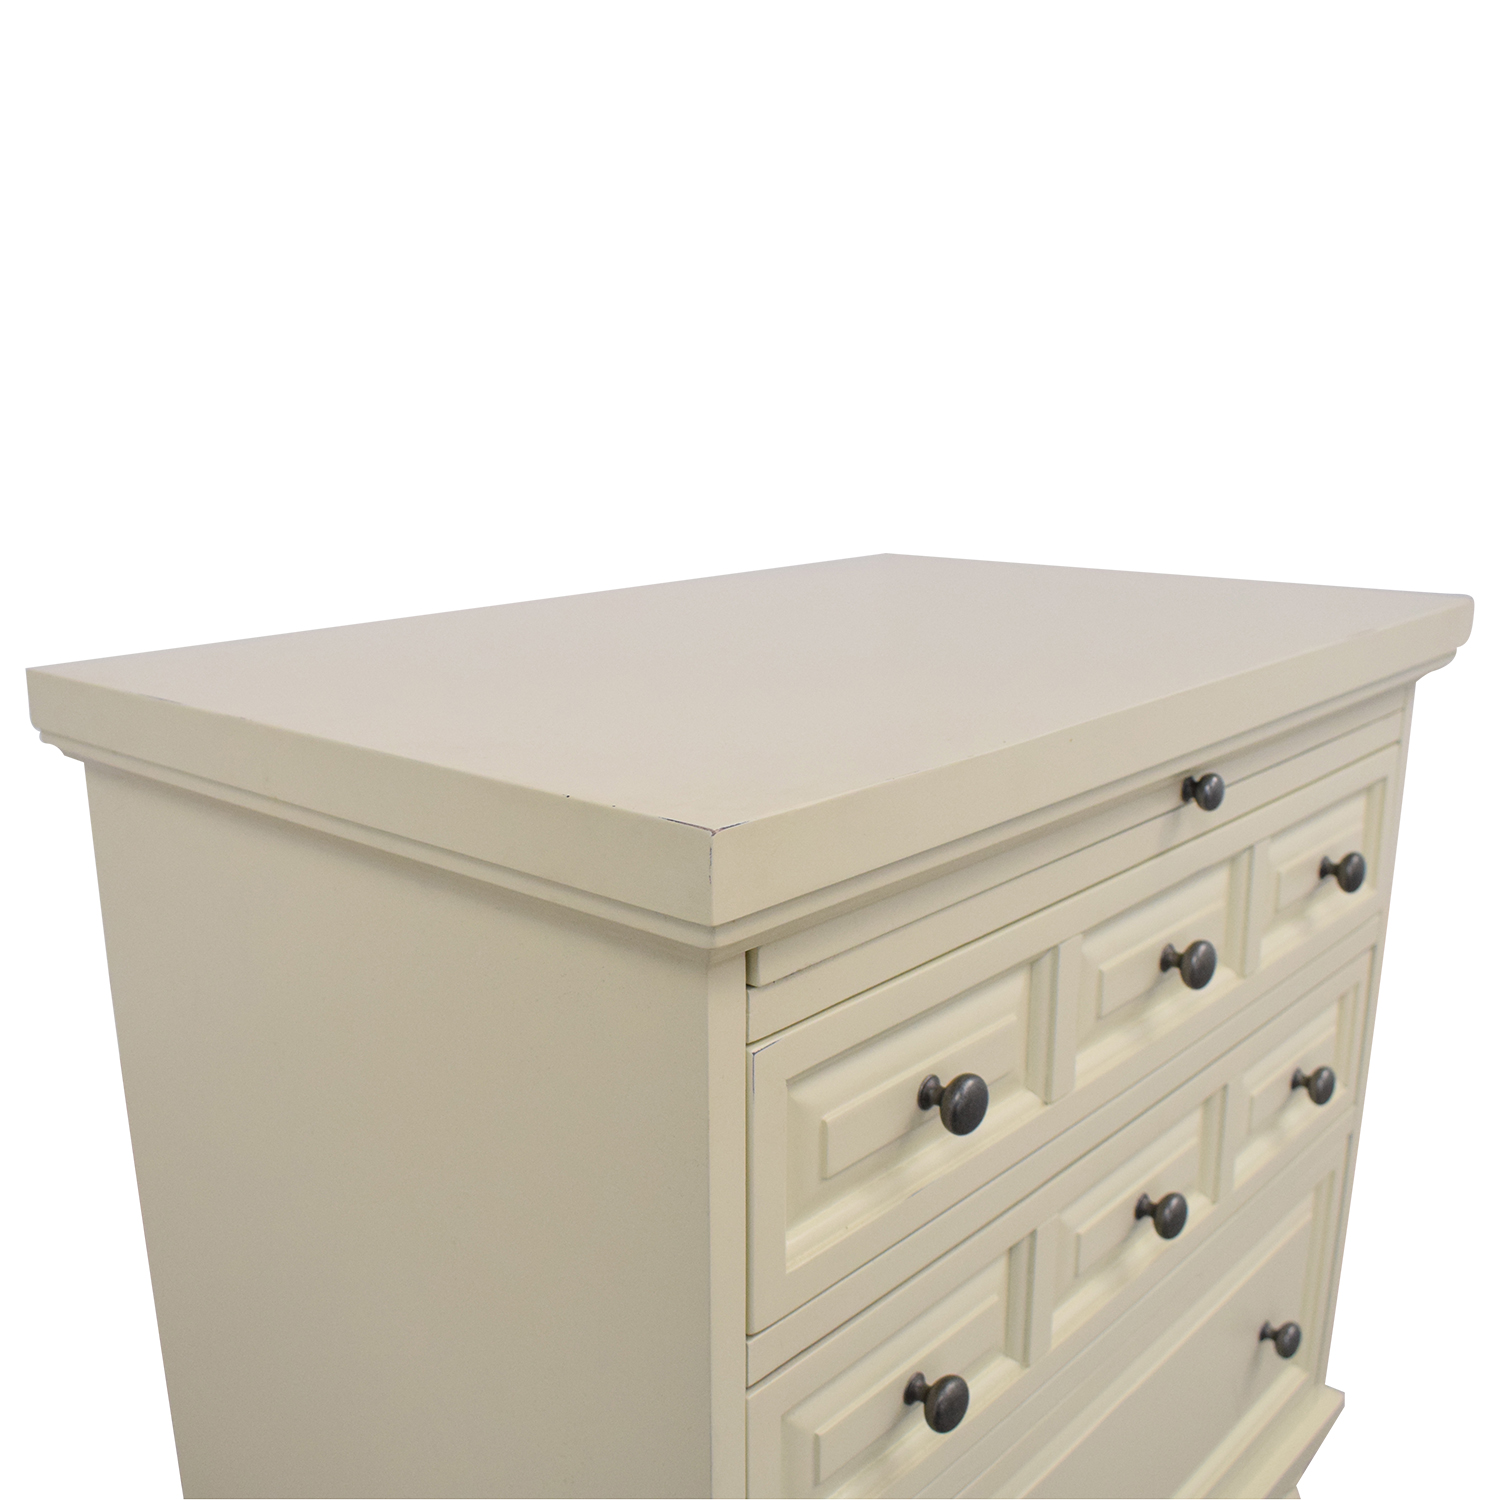 Pier 1 Pier 1 Ashworth Bedside Chest discount